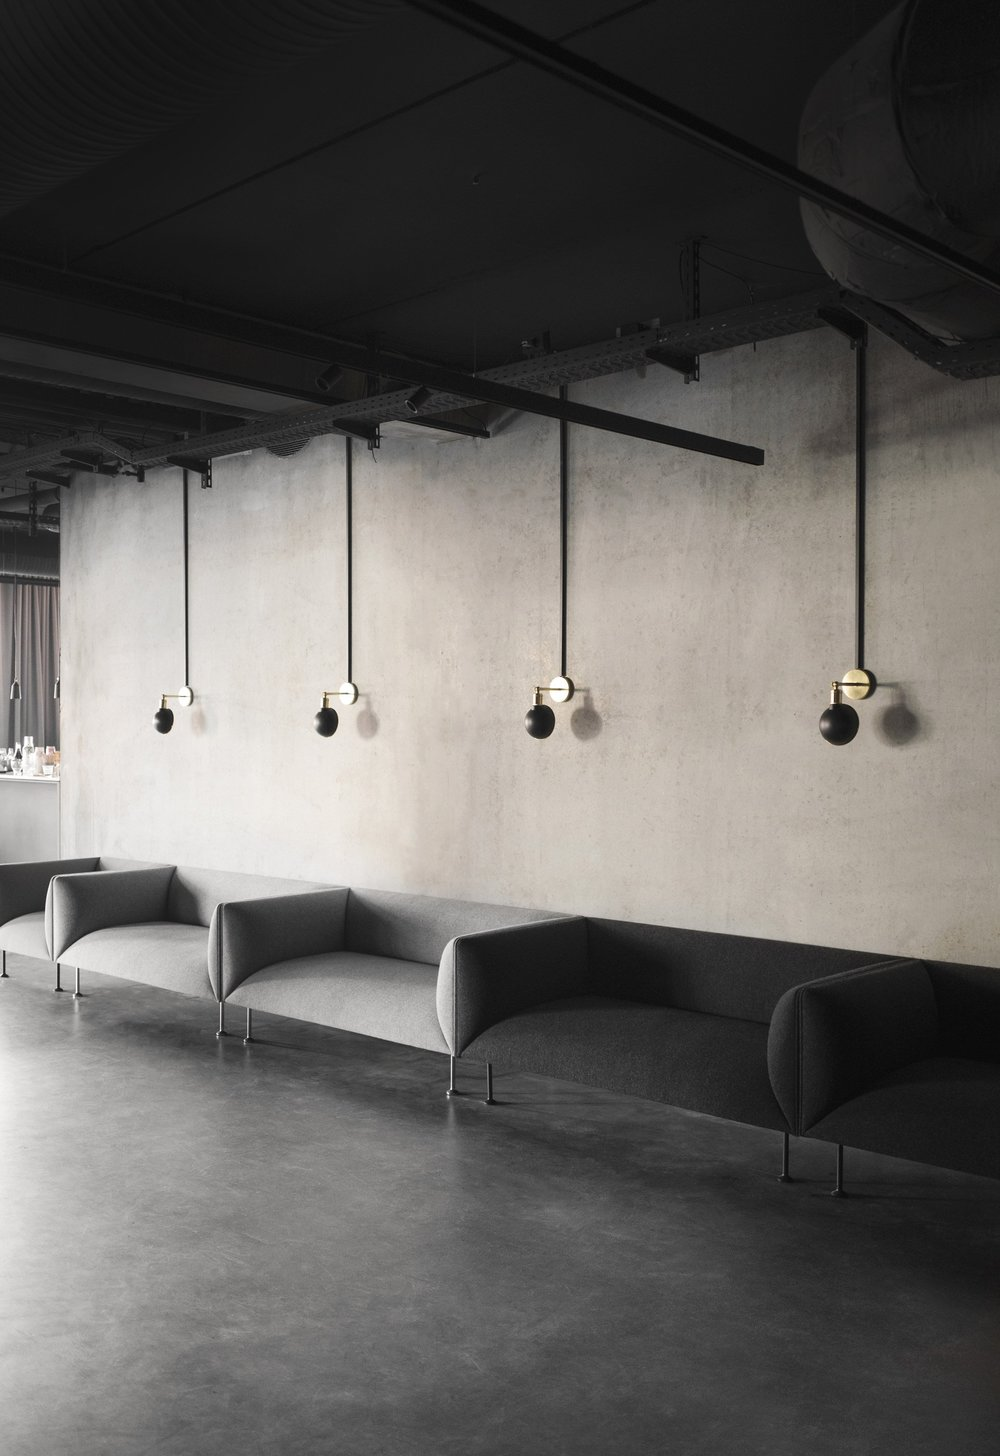 menu-space-by-menu-x-norm-architects-interiors_dezeen_2364_col_19.jpg